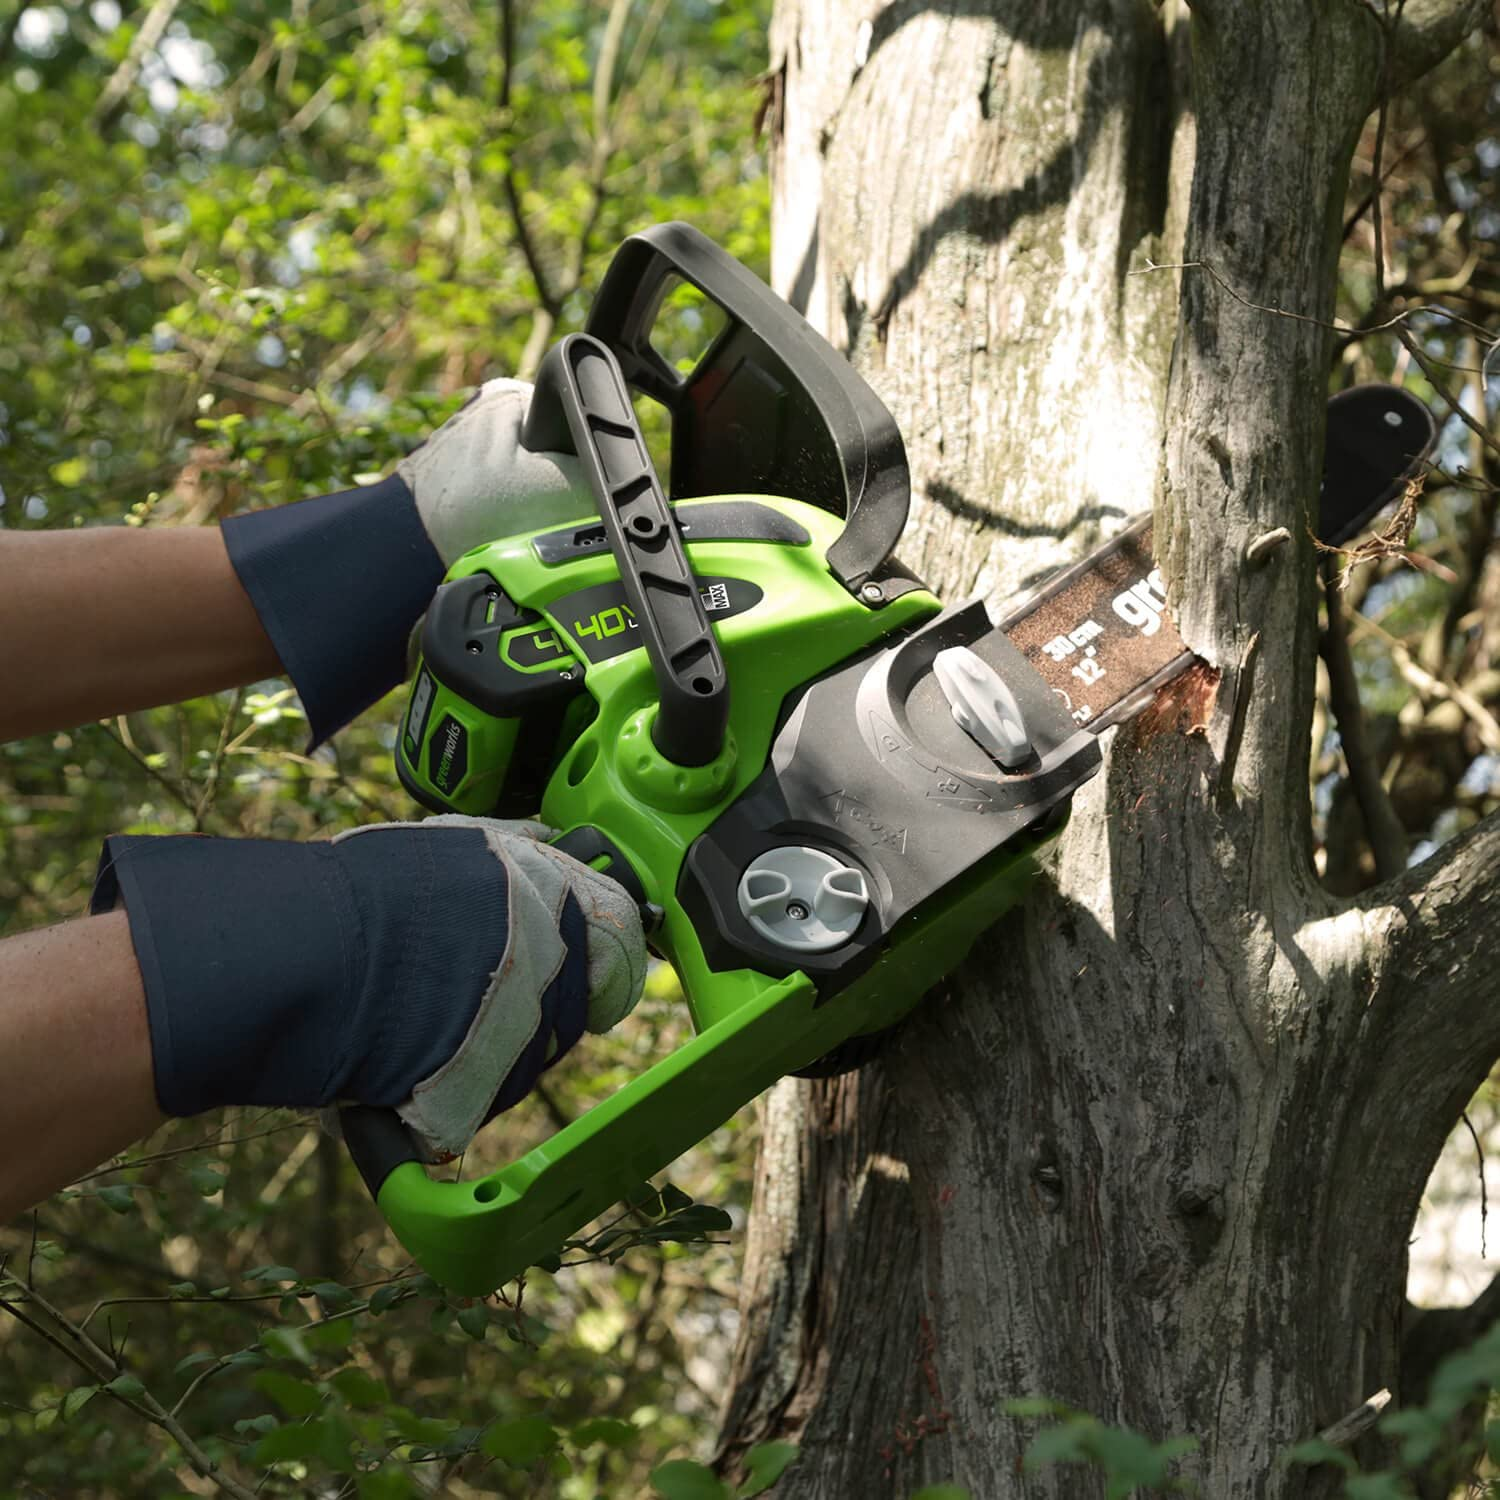 Best Cordless Chainsaw in 2020: Reviews & Buying Guide 5